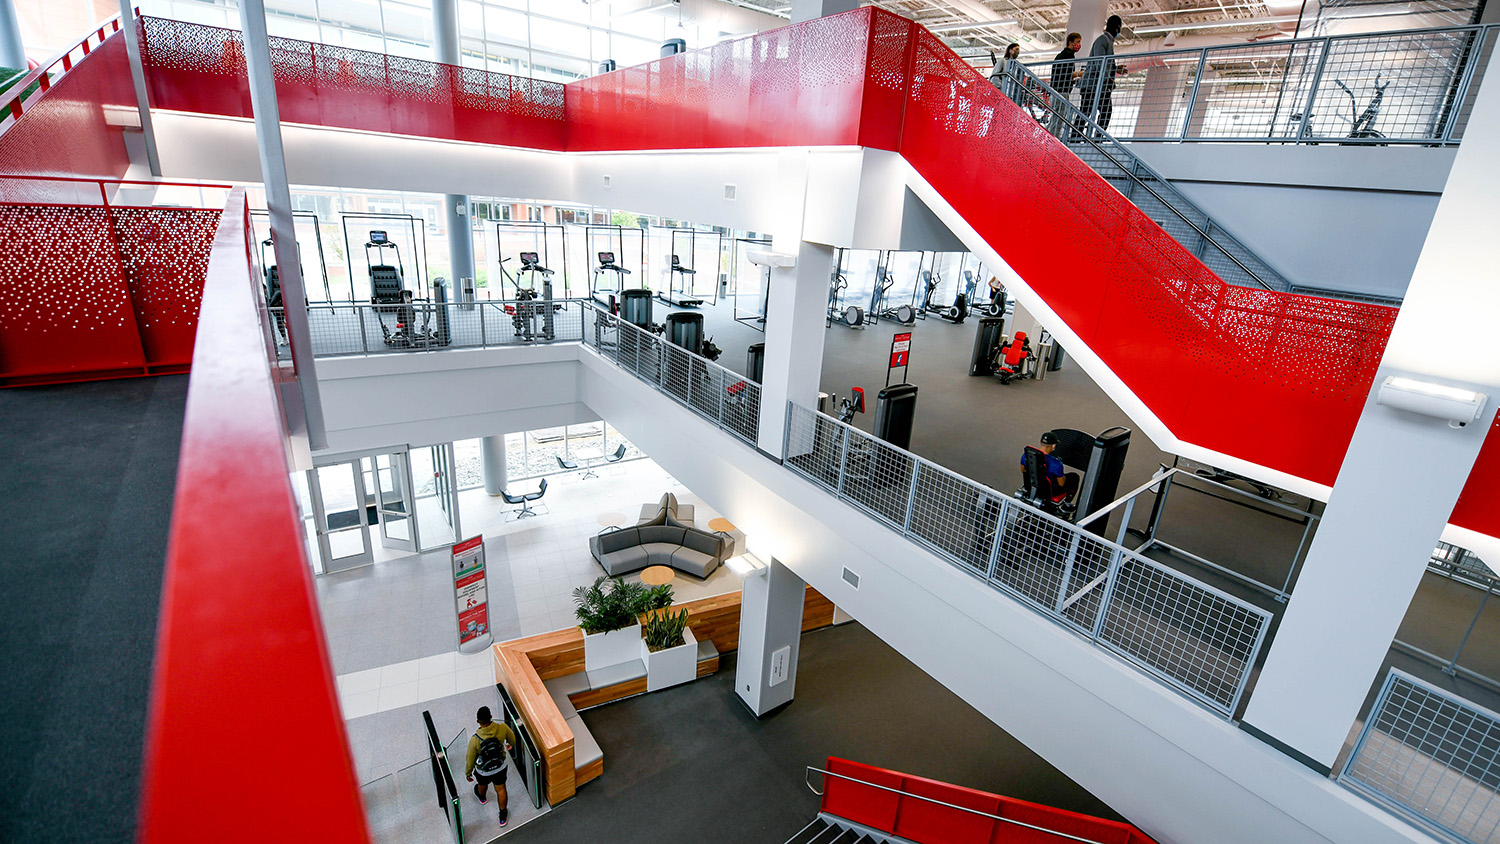 Students explored the Wellness and Recreation Center, which opened on Oct. 26.